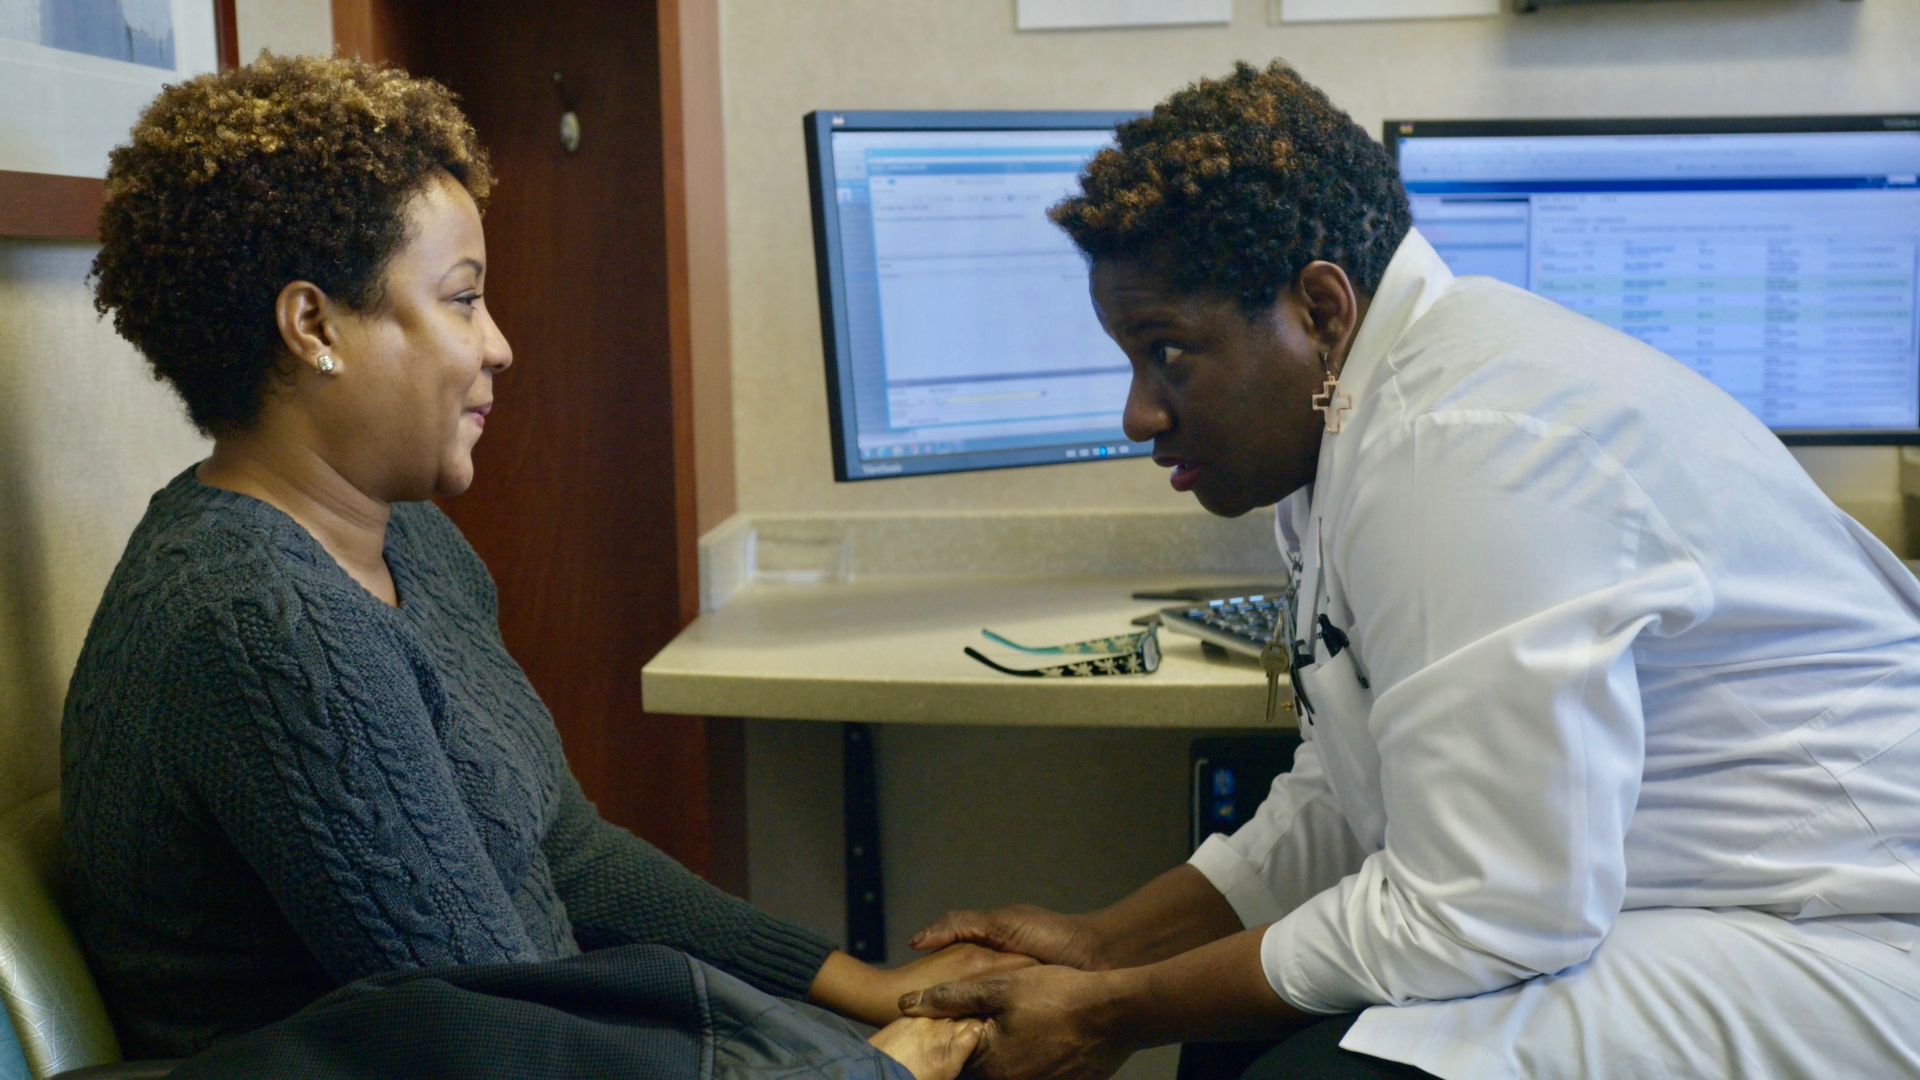 It's a challenge in sickle cell disease care: equipping young patients with the skills and tools to manage their health as adults. Here's how we're making that transition easier than ever.